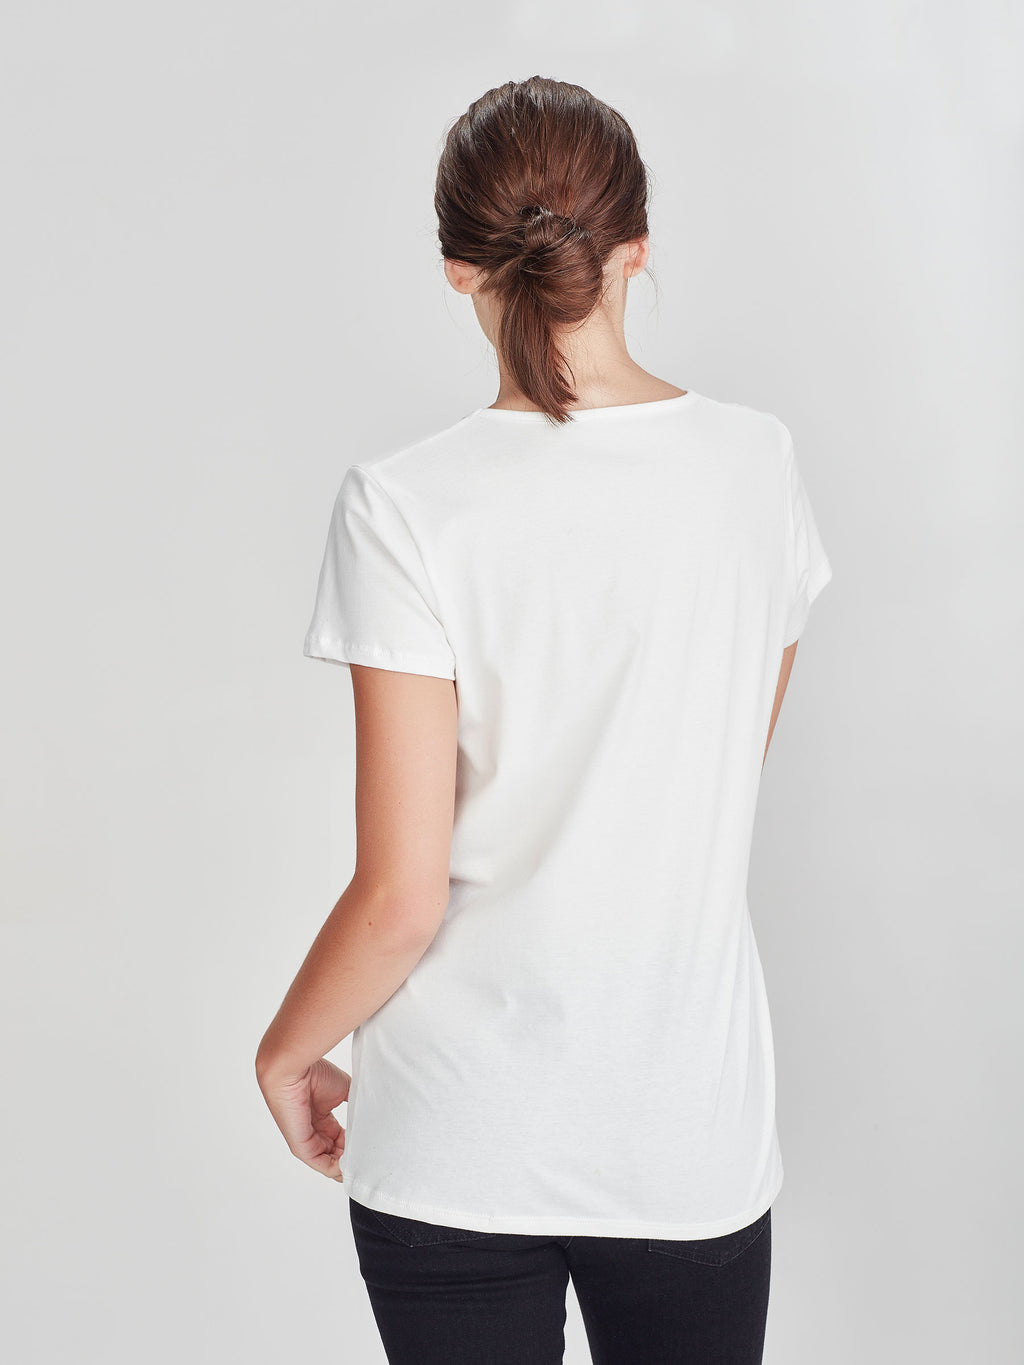 Dean T (Soft Cotton Jersey) White